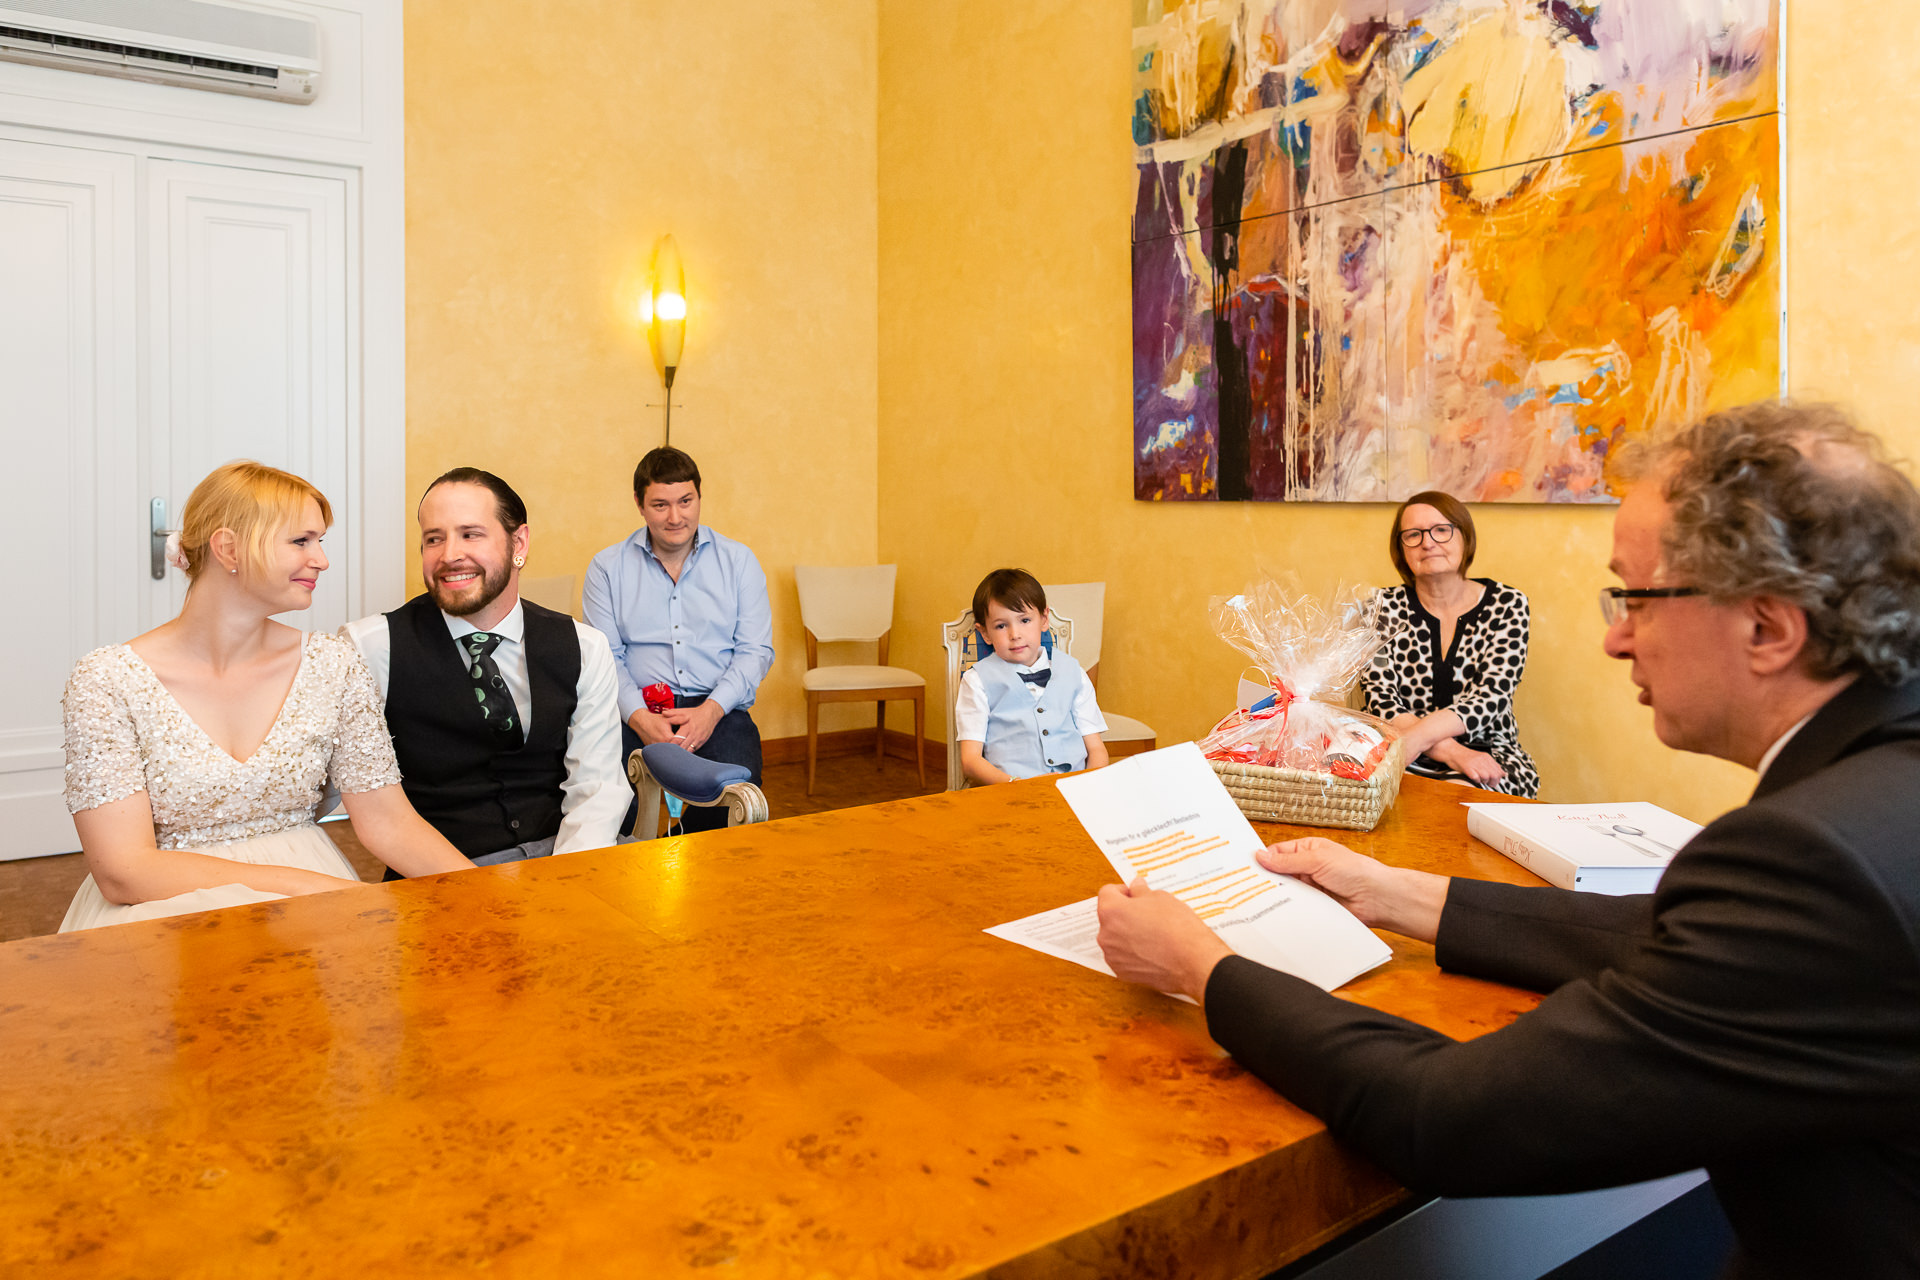 City Hall Pictures - Luxembourg Elopements | The couple sit together at a table in a bright room during the ceremony